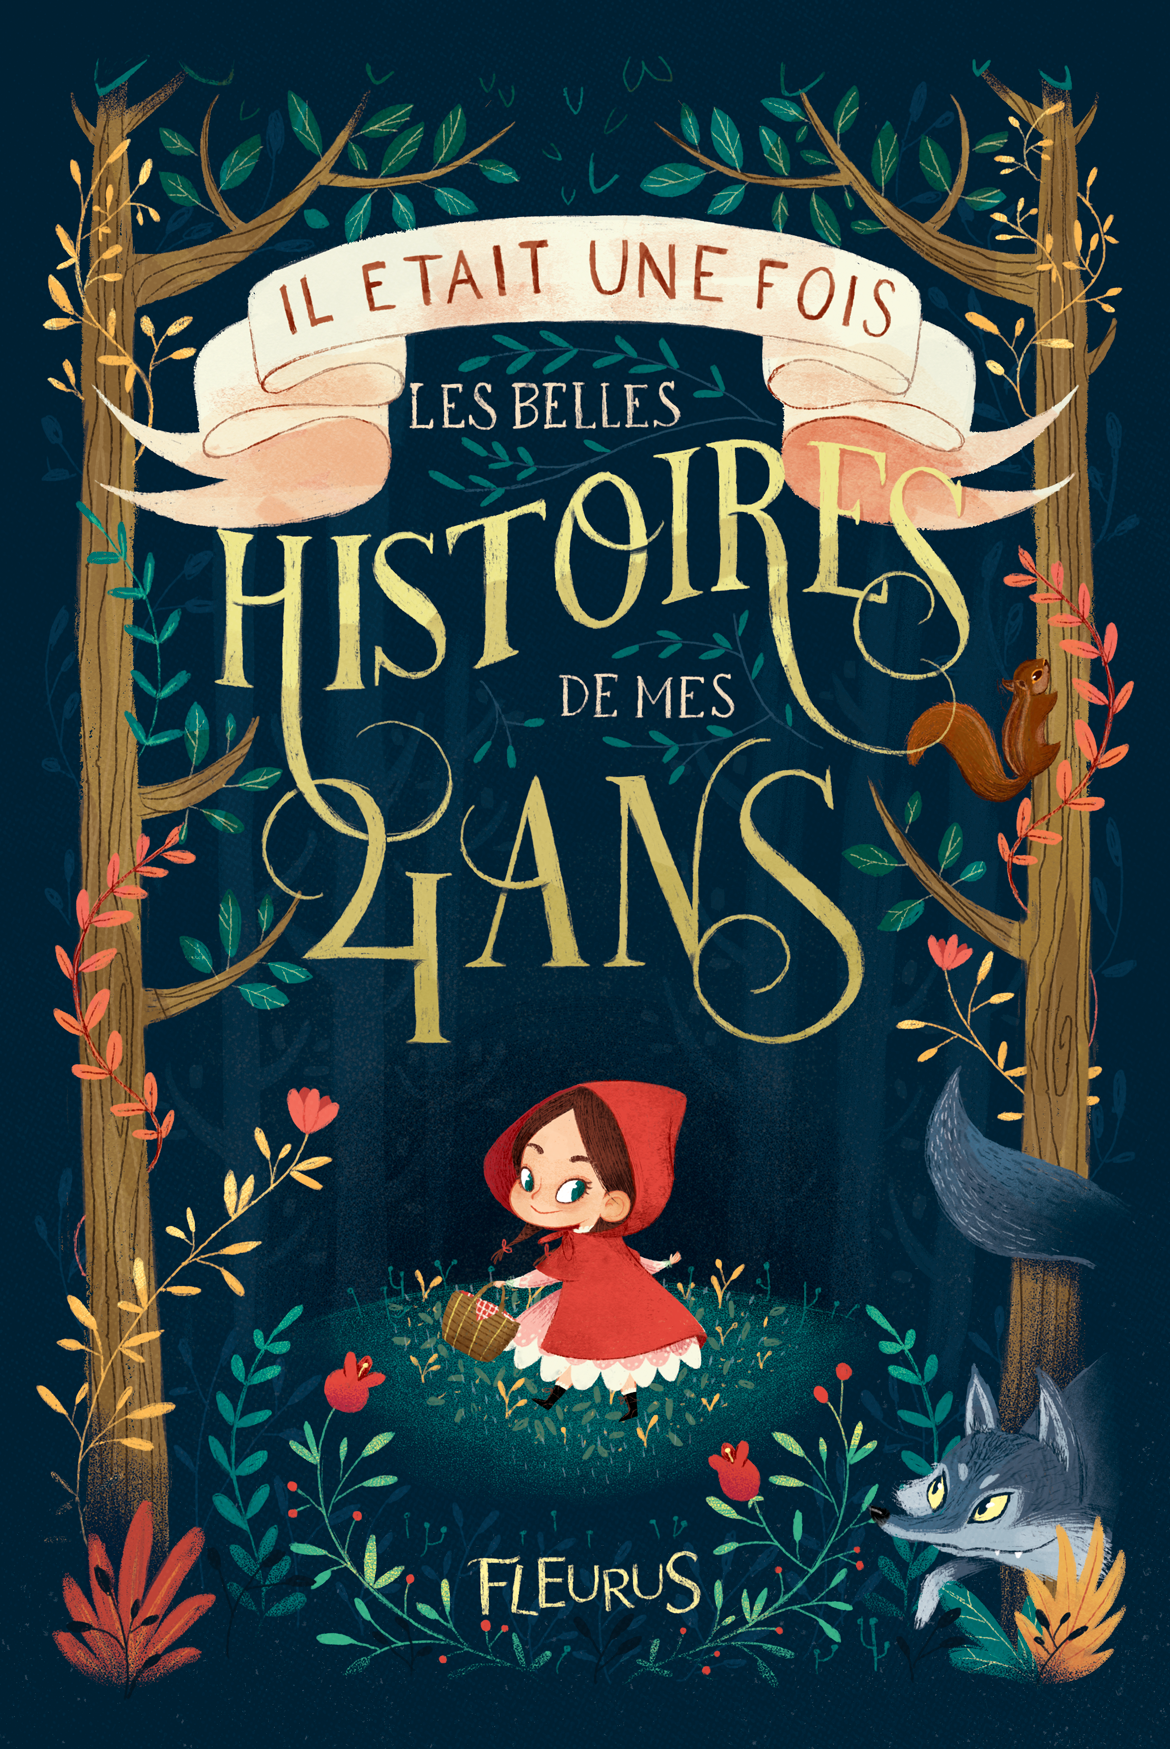 Kids Story Book Cover : Children s book covers for fleurus editions on behance